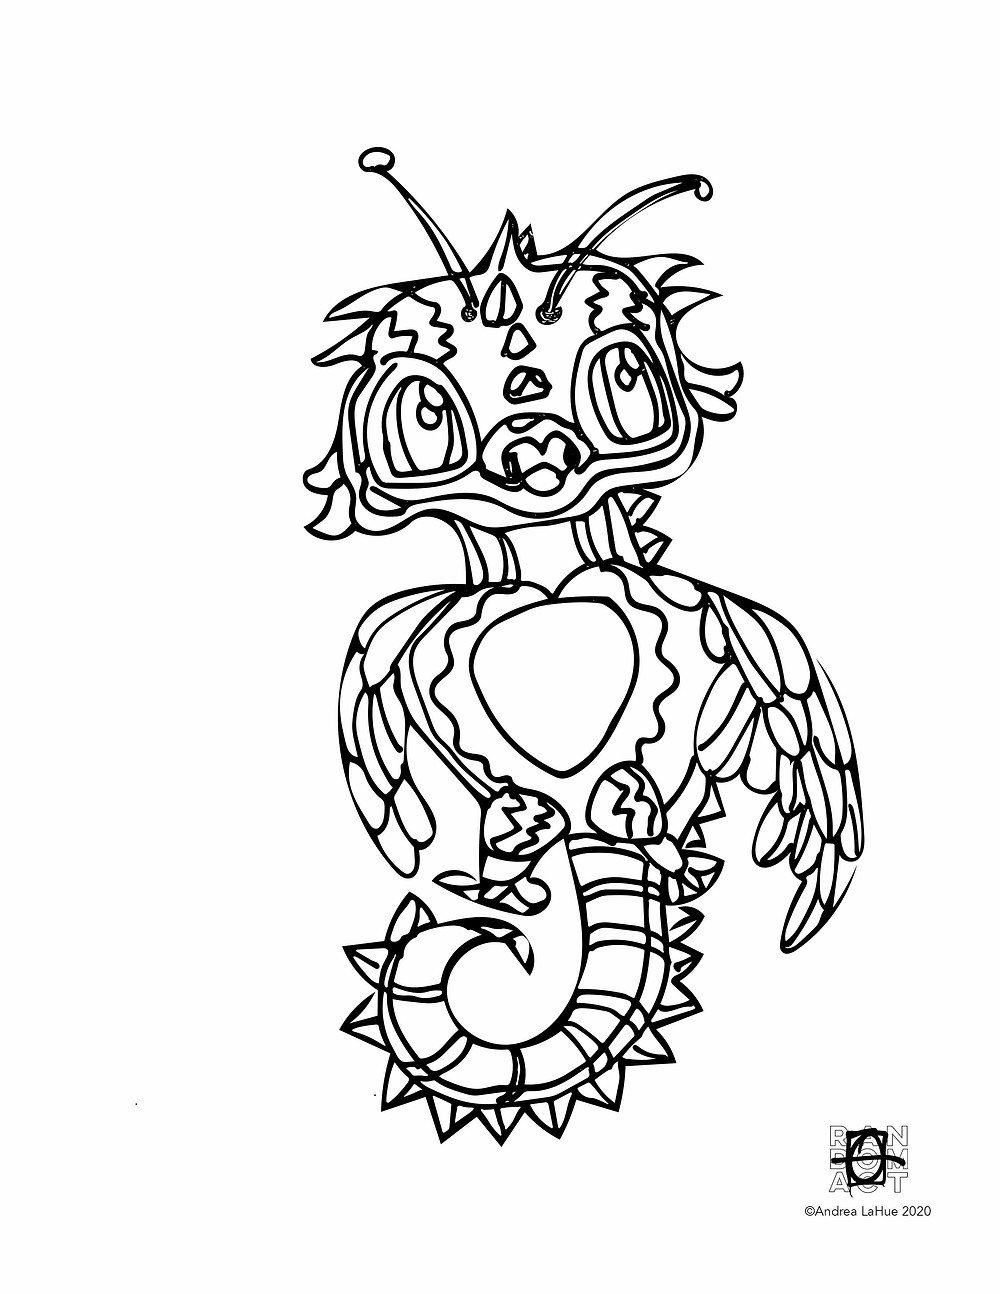 Dragon Coloring page 0330 by Andrea LaHue